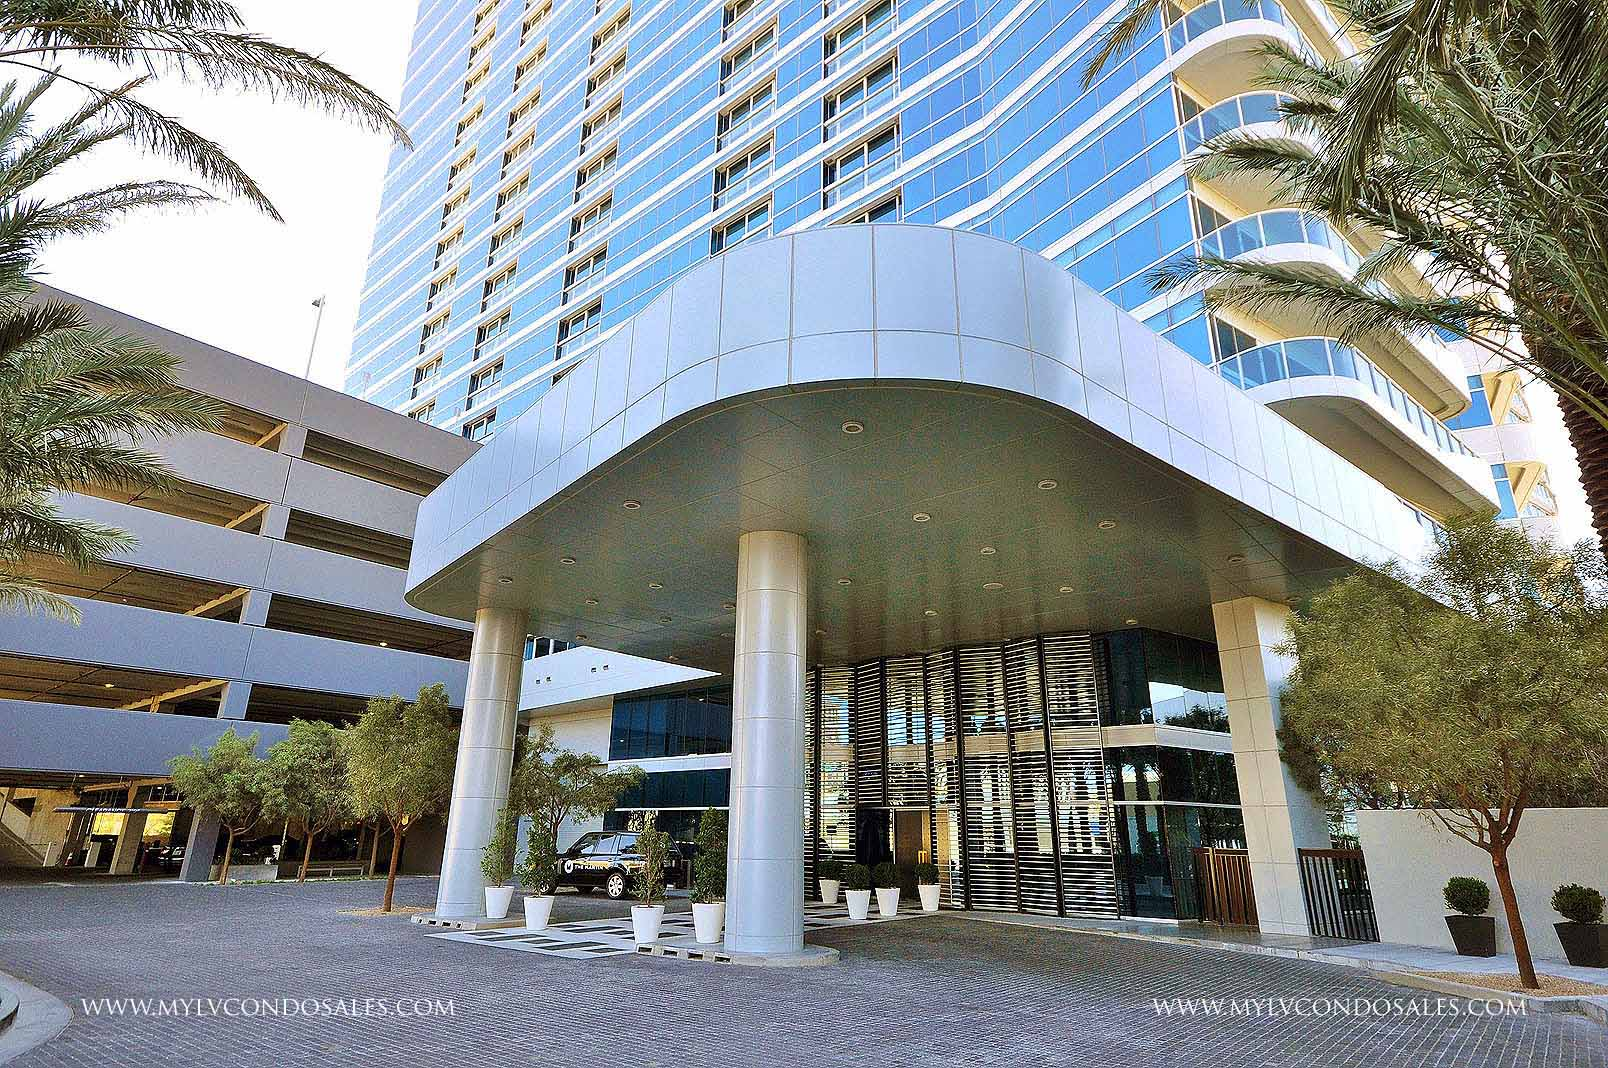 The Martin Las Vegas | Condos For Sale and Rent – Las ...